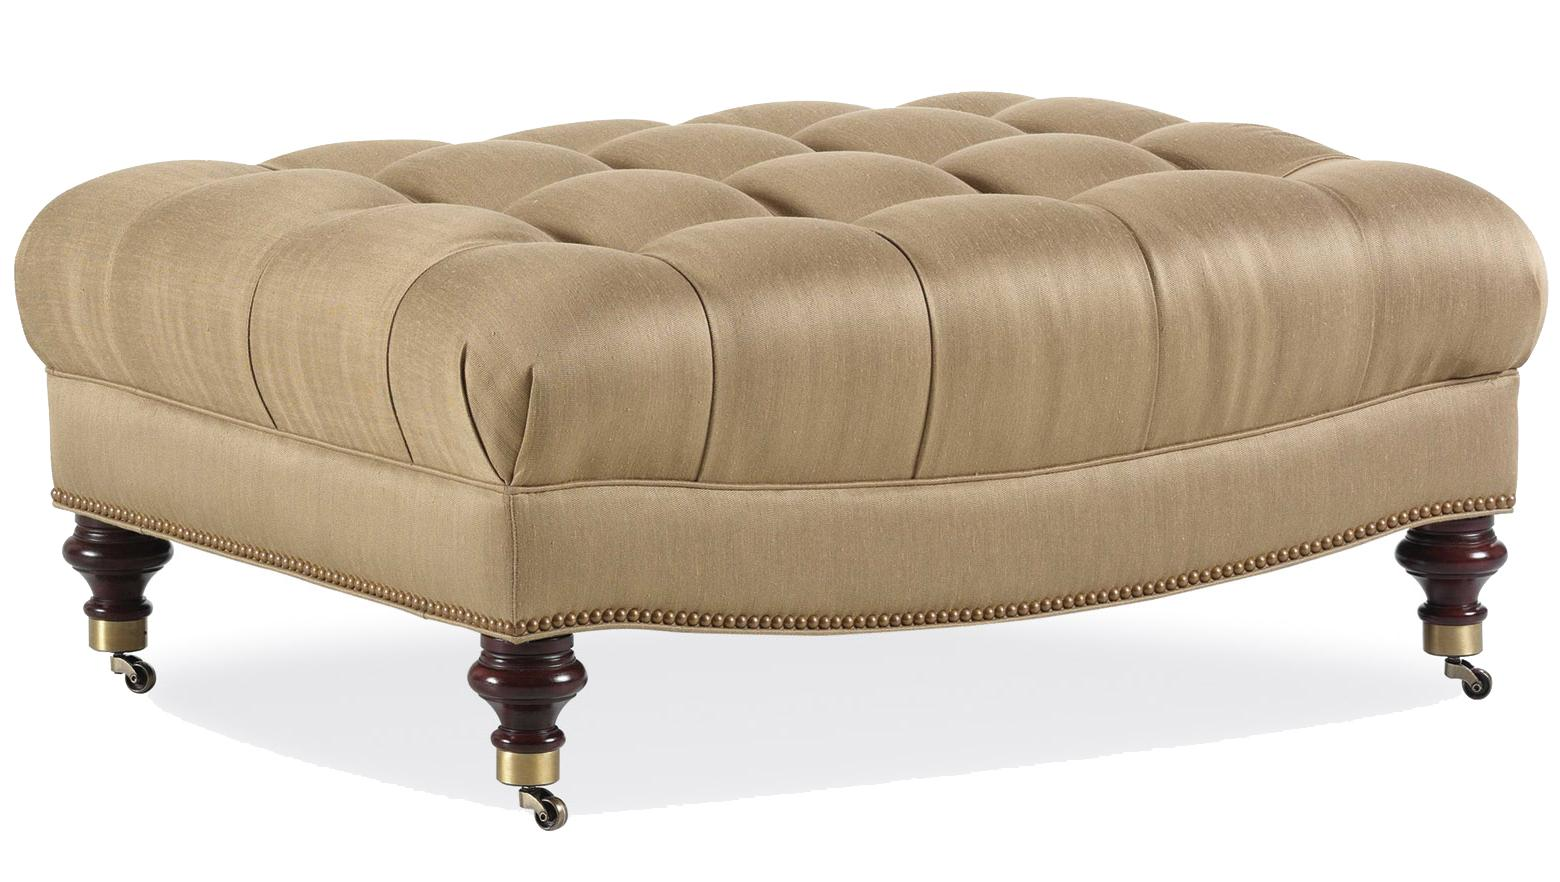 Fine Upholstered Accents Cocktail Ottoman    by Jessica Charles at Stuckey Furniture